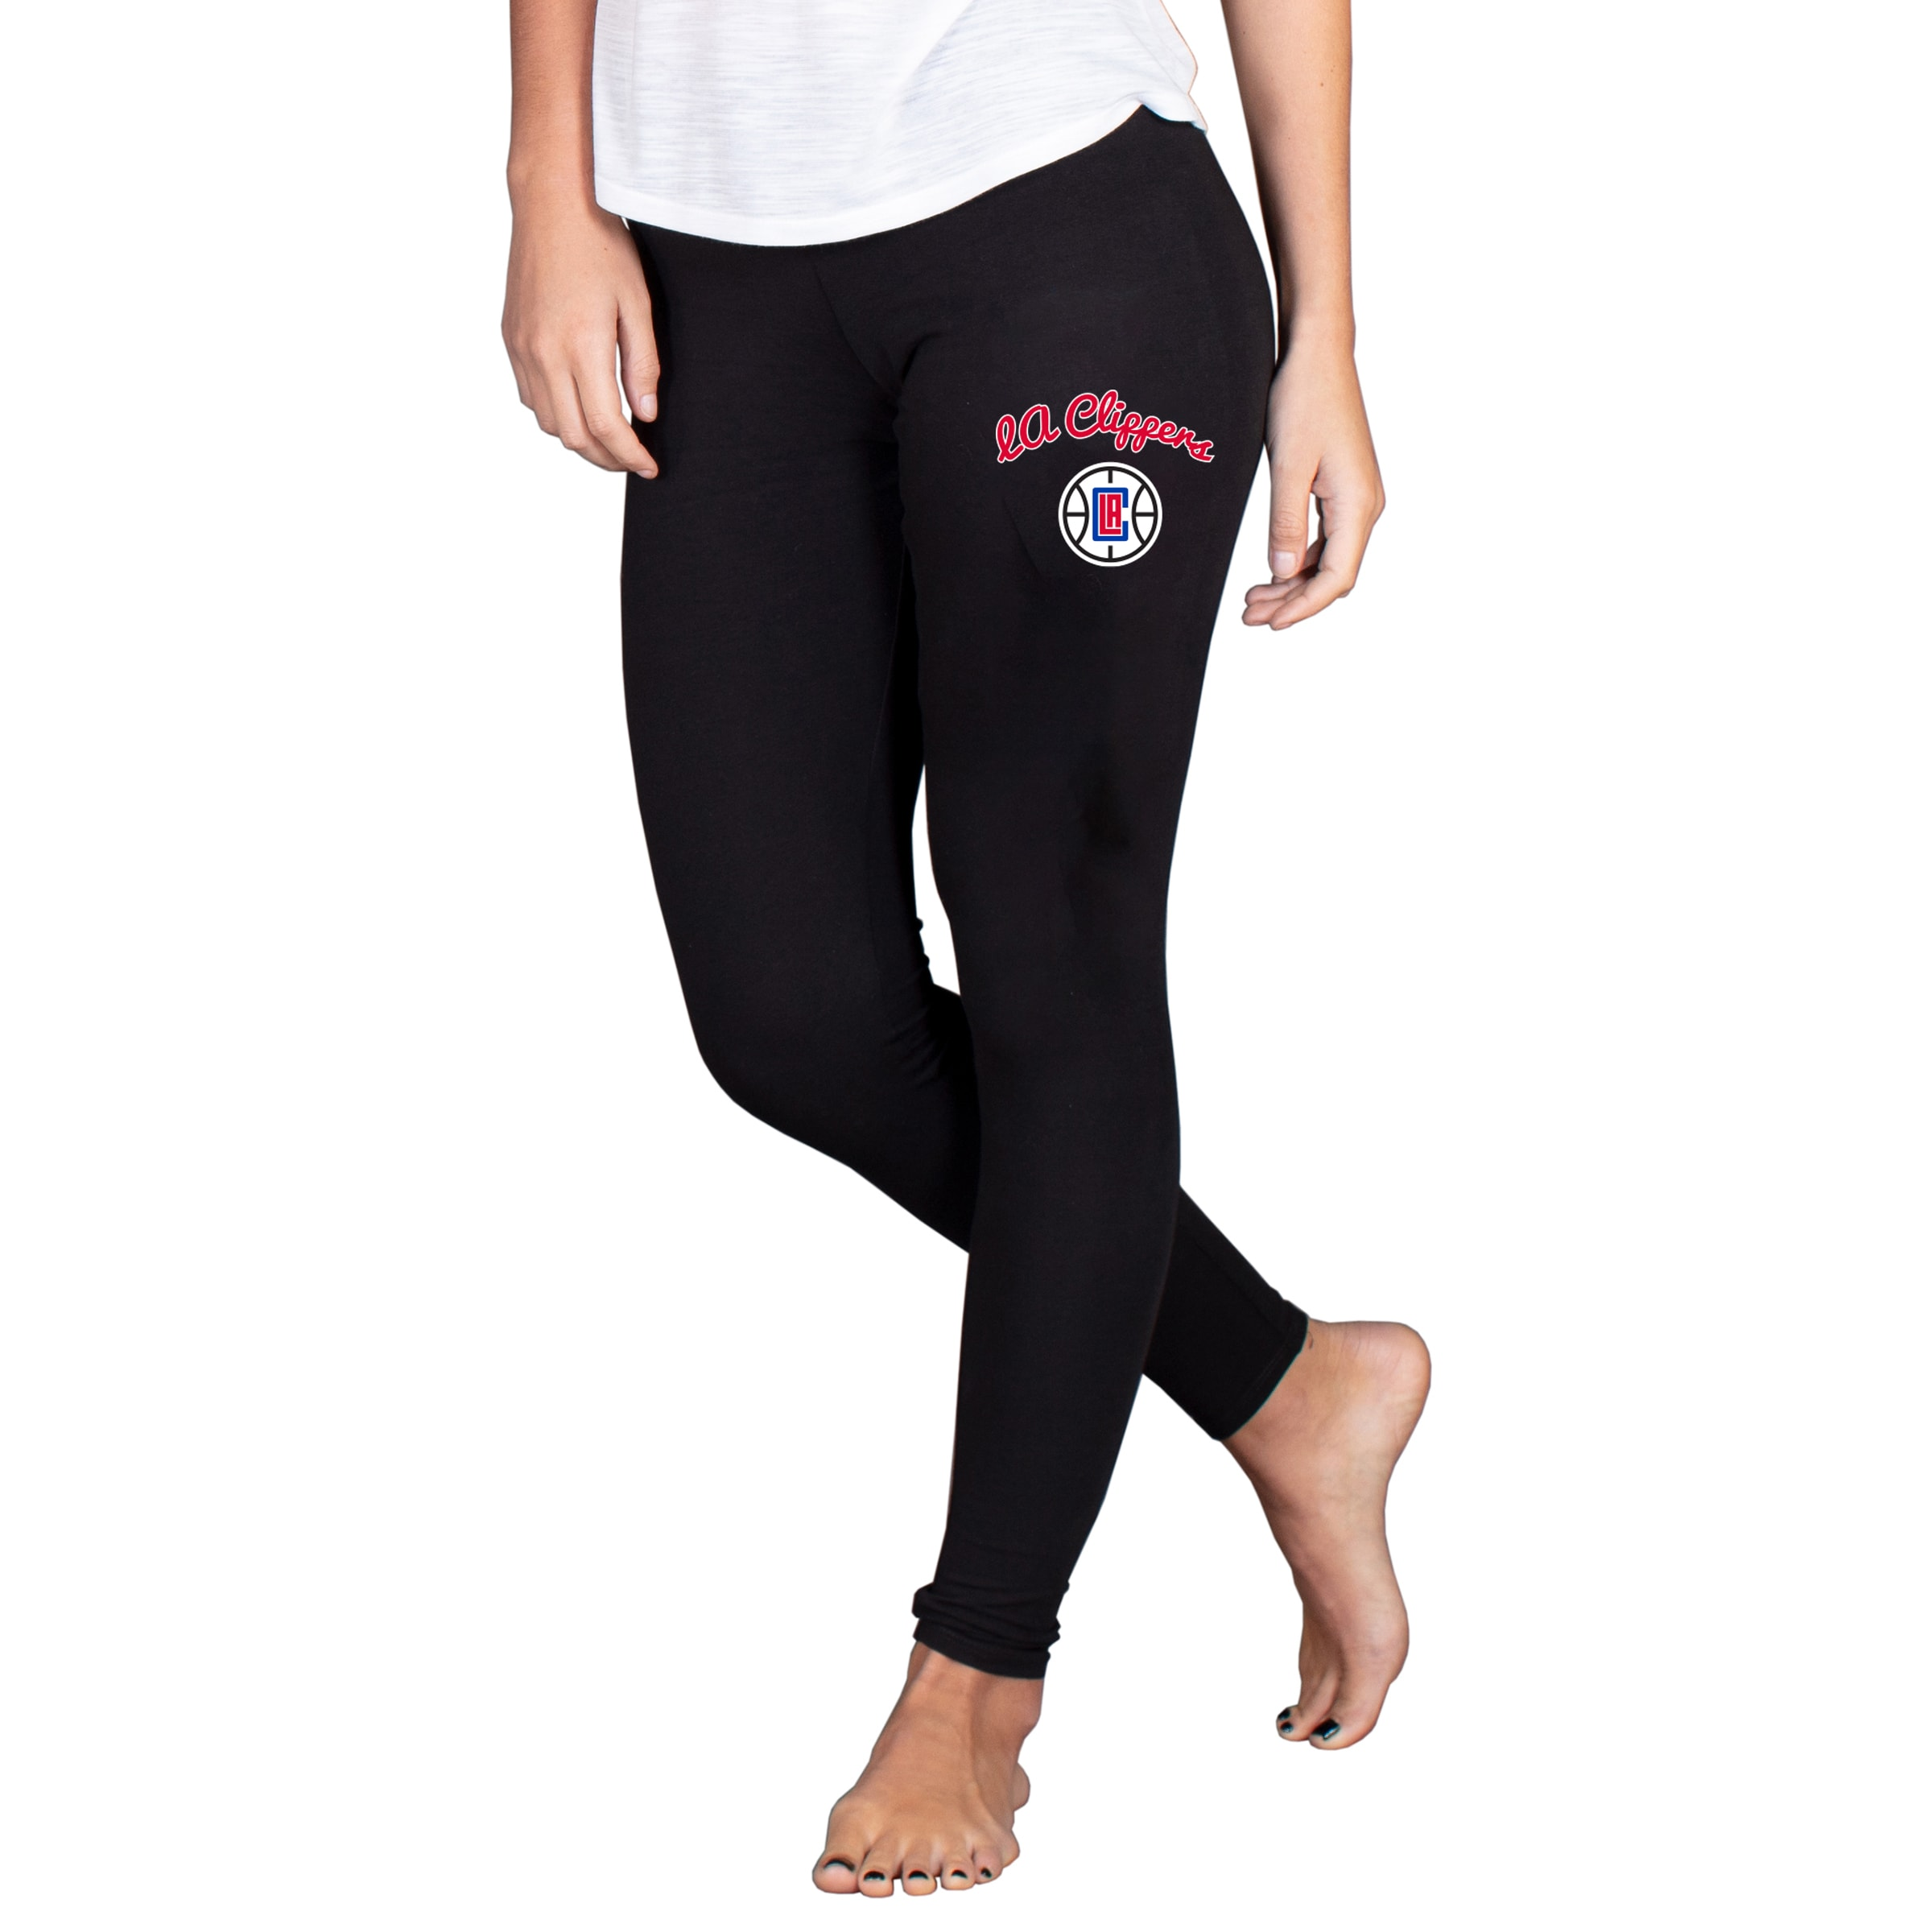 LA Clippers Concepts Sport Women's Fraction Leggings - Black